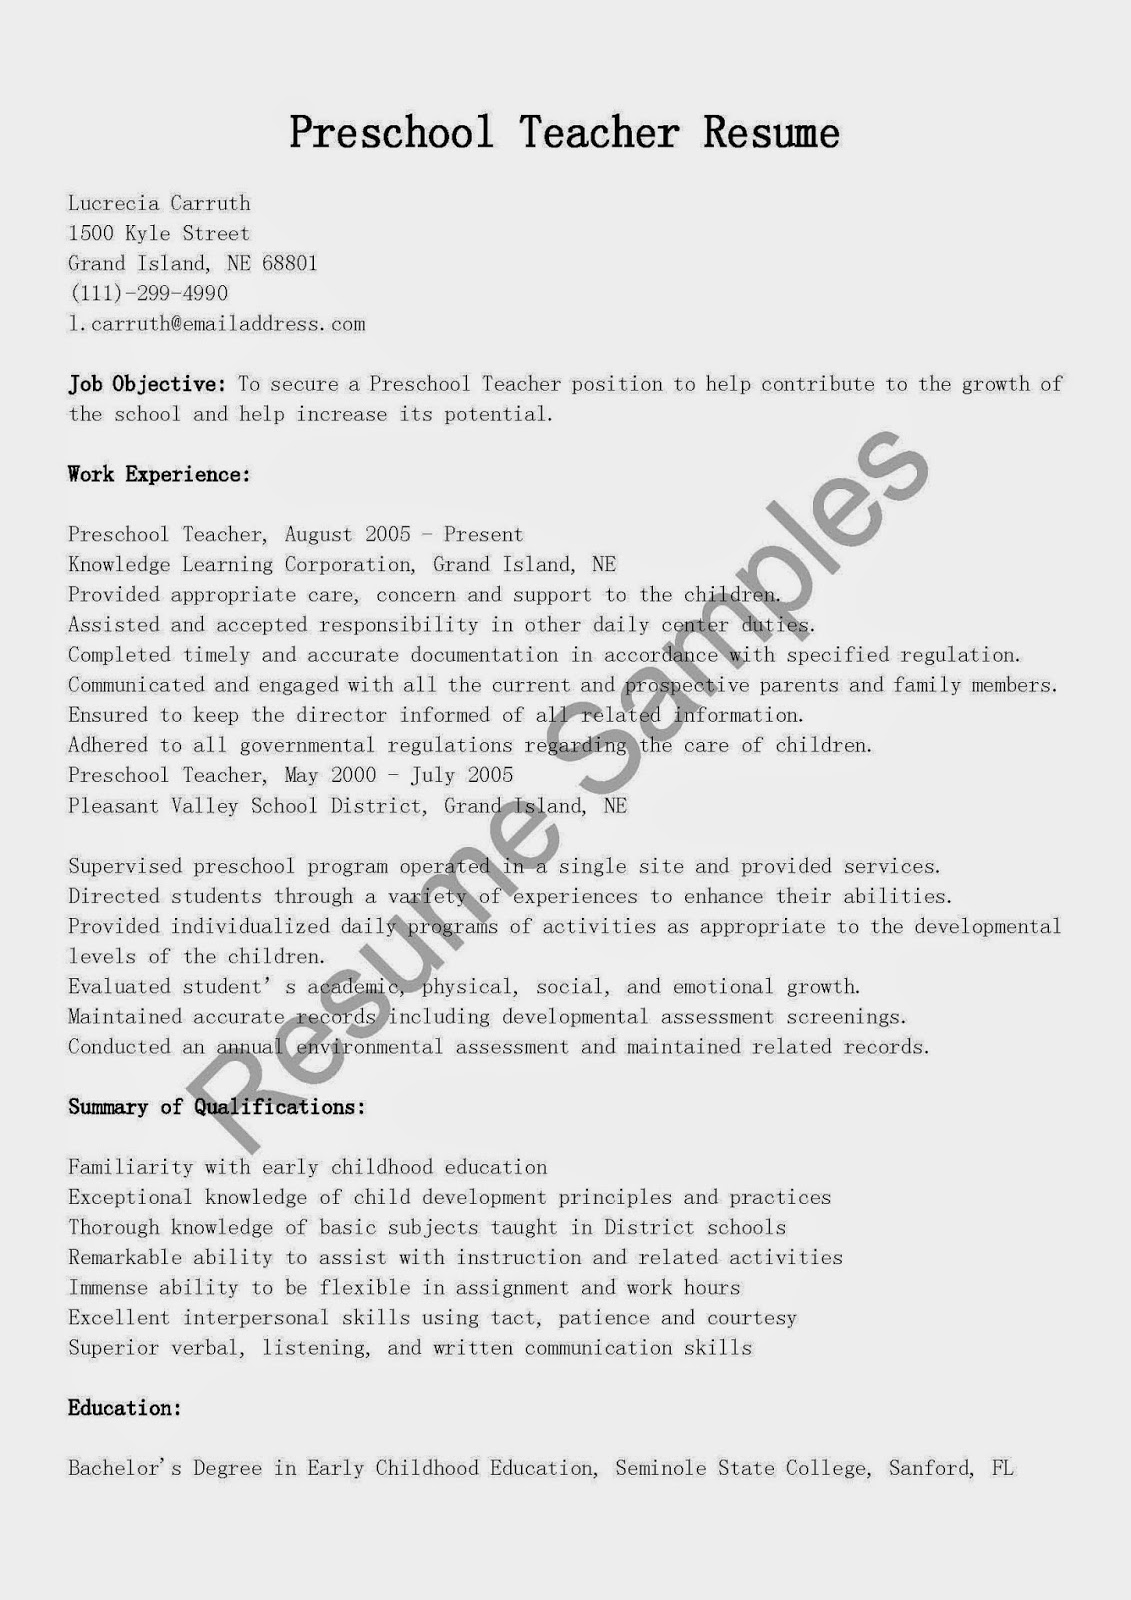 sample resume for assistant teacher in preschools - resume samples preschool teacher resume sample